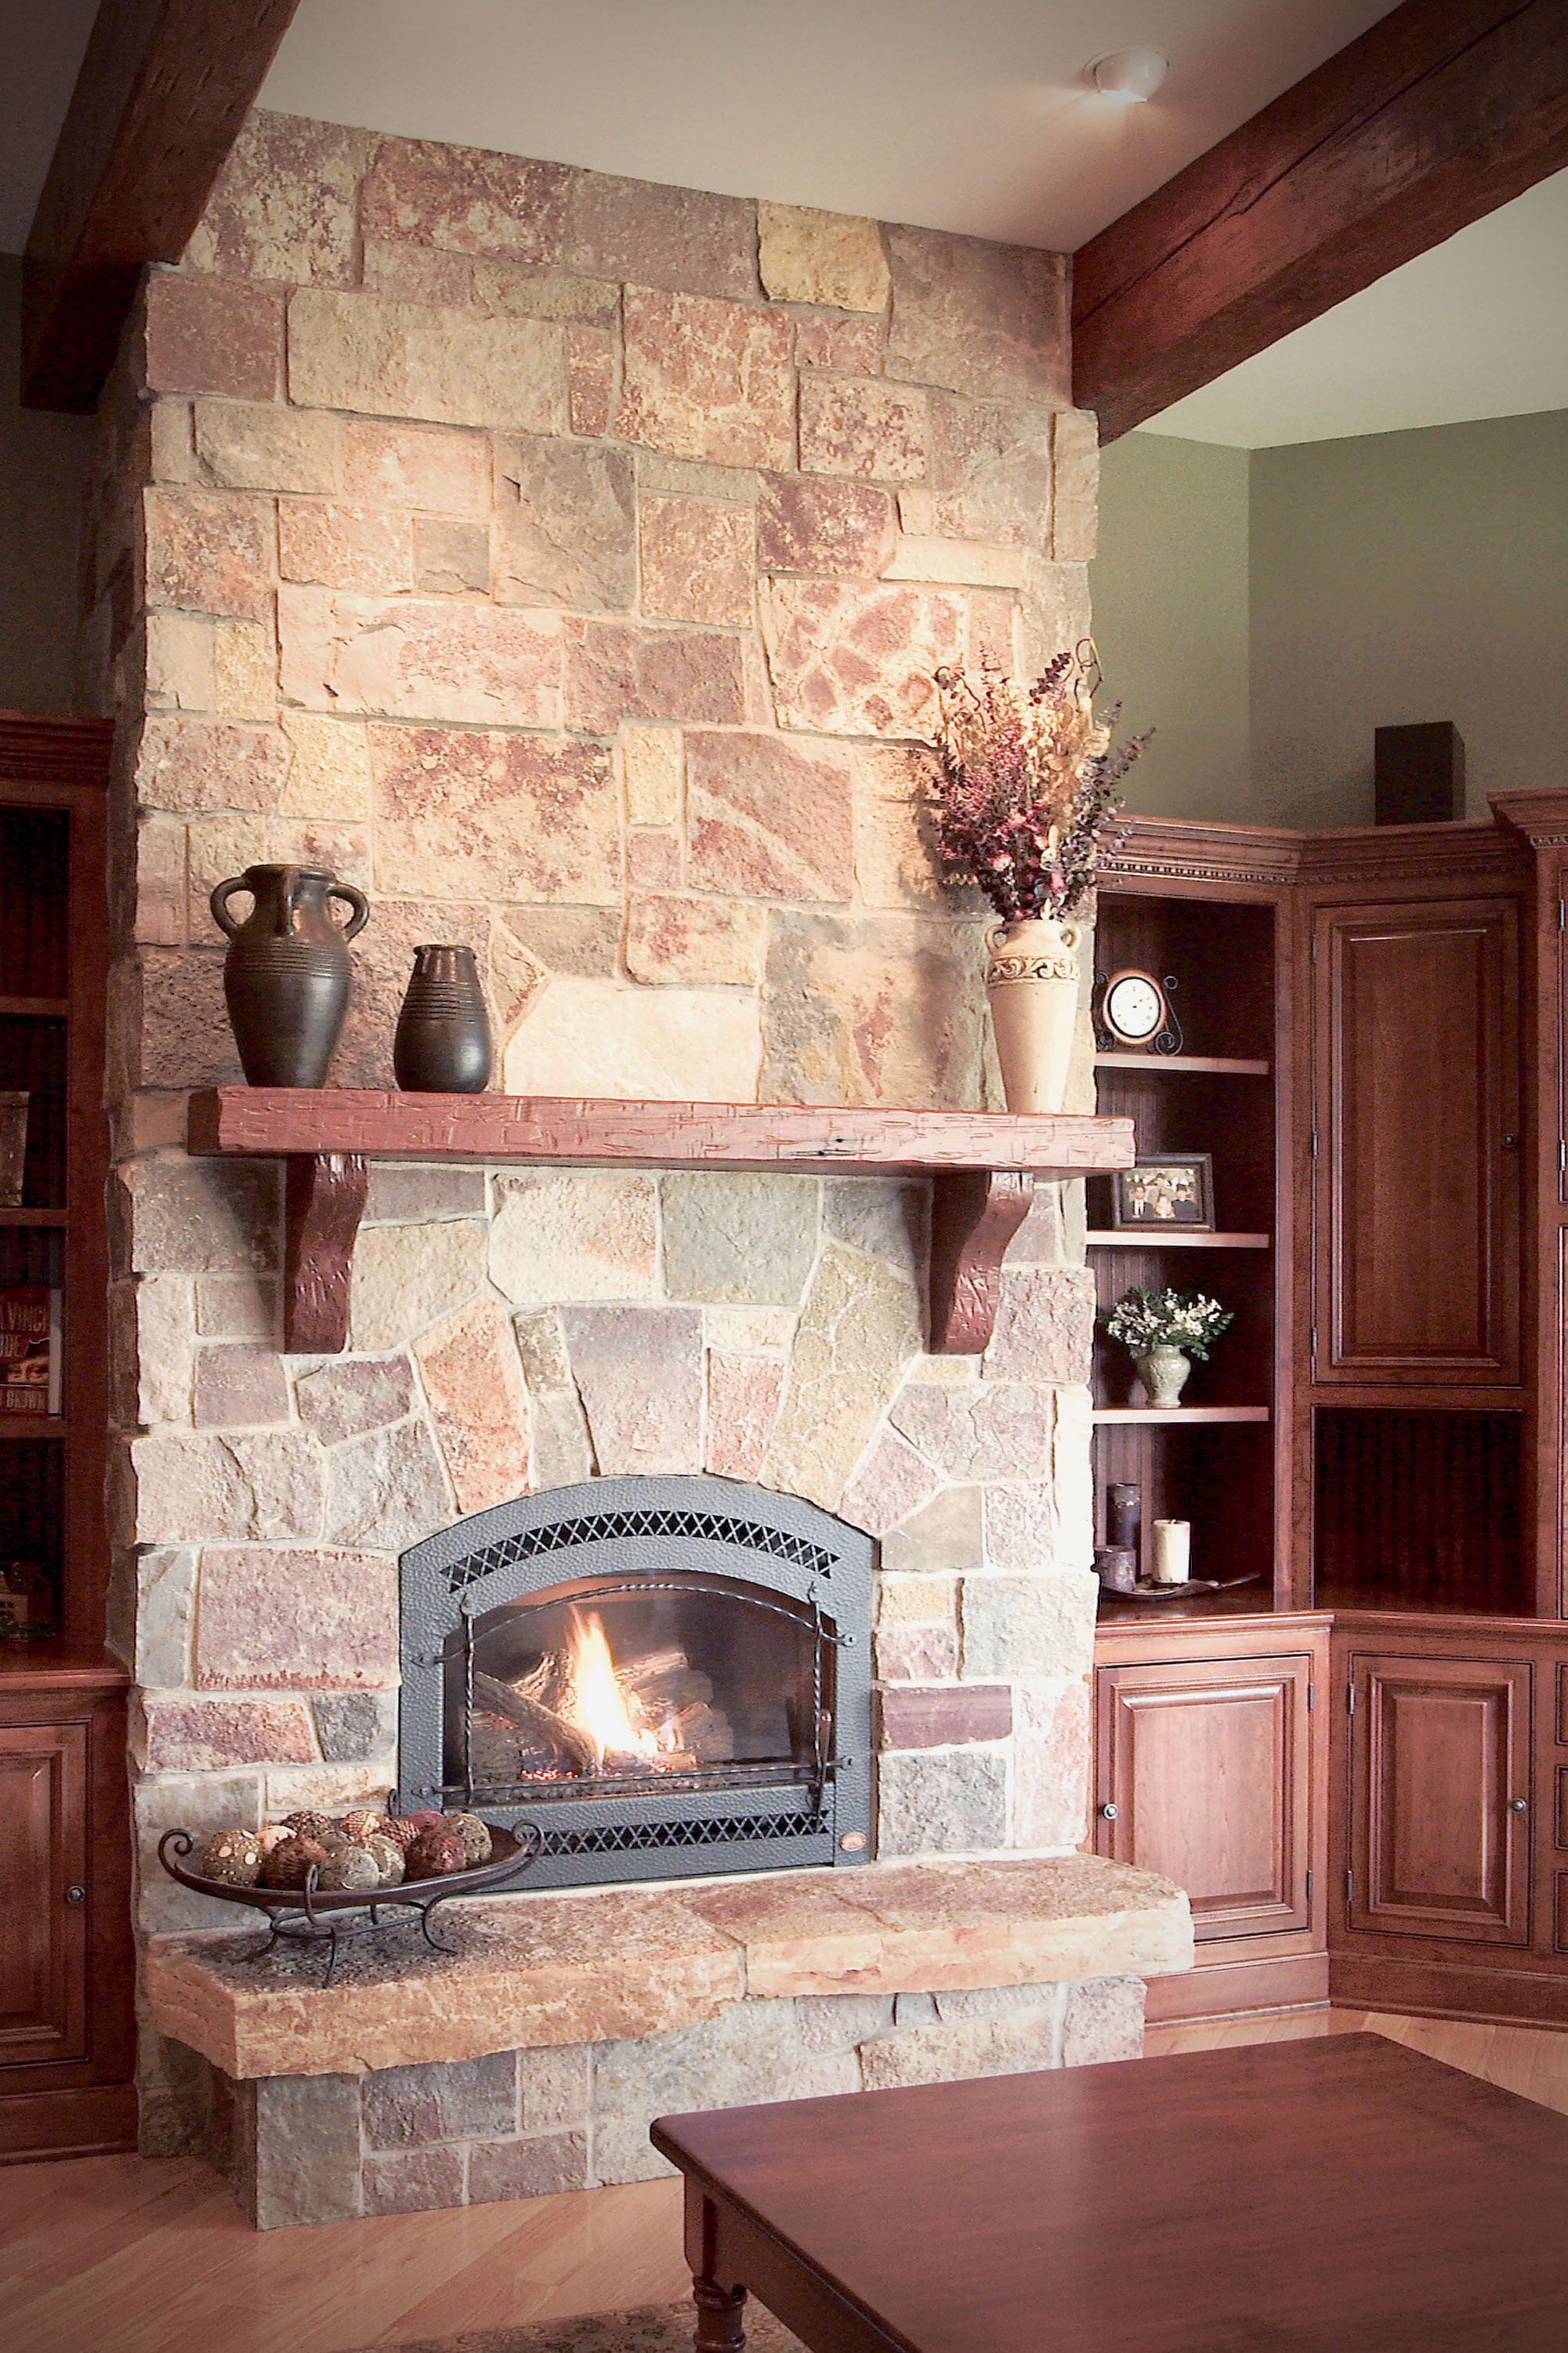 Full Color Castle Rock Castle Stone Full Thin Stone Veneer Home Fireplace Home Indoor Fireplace